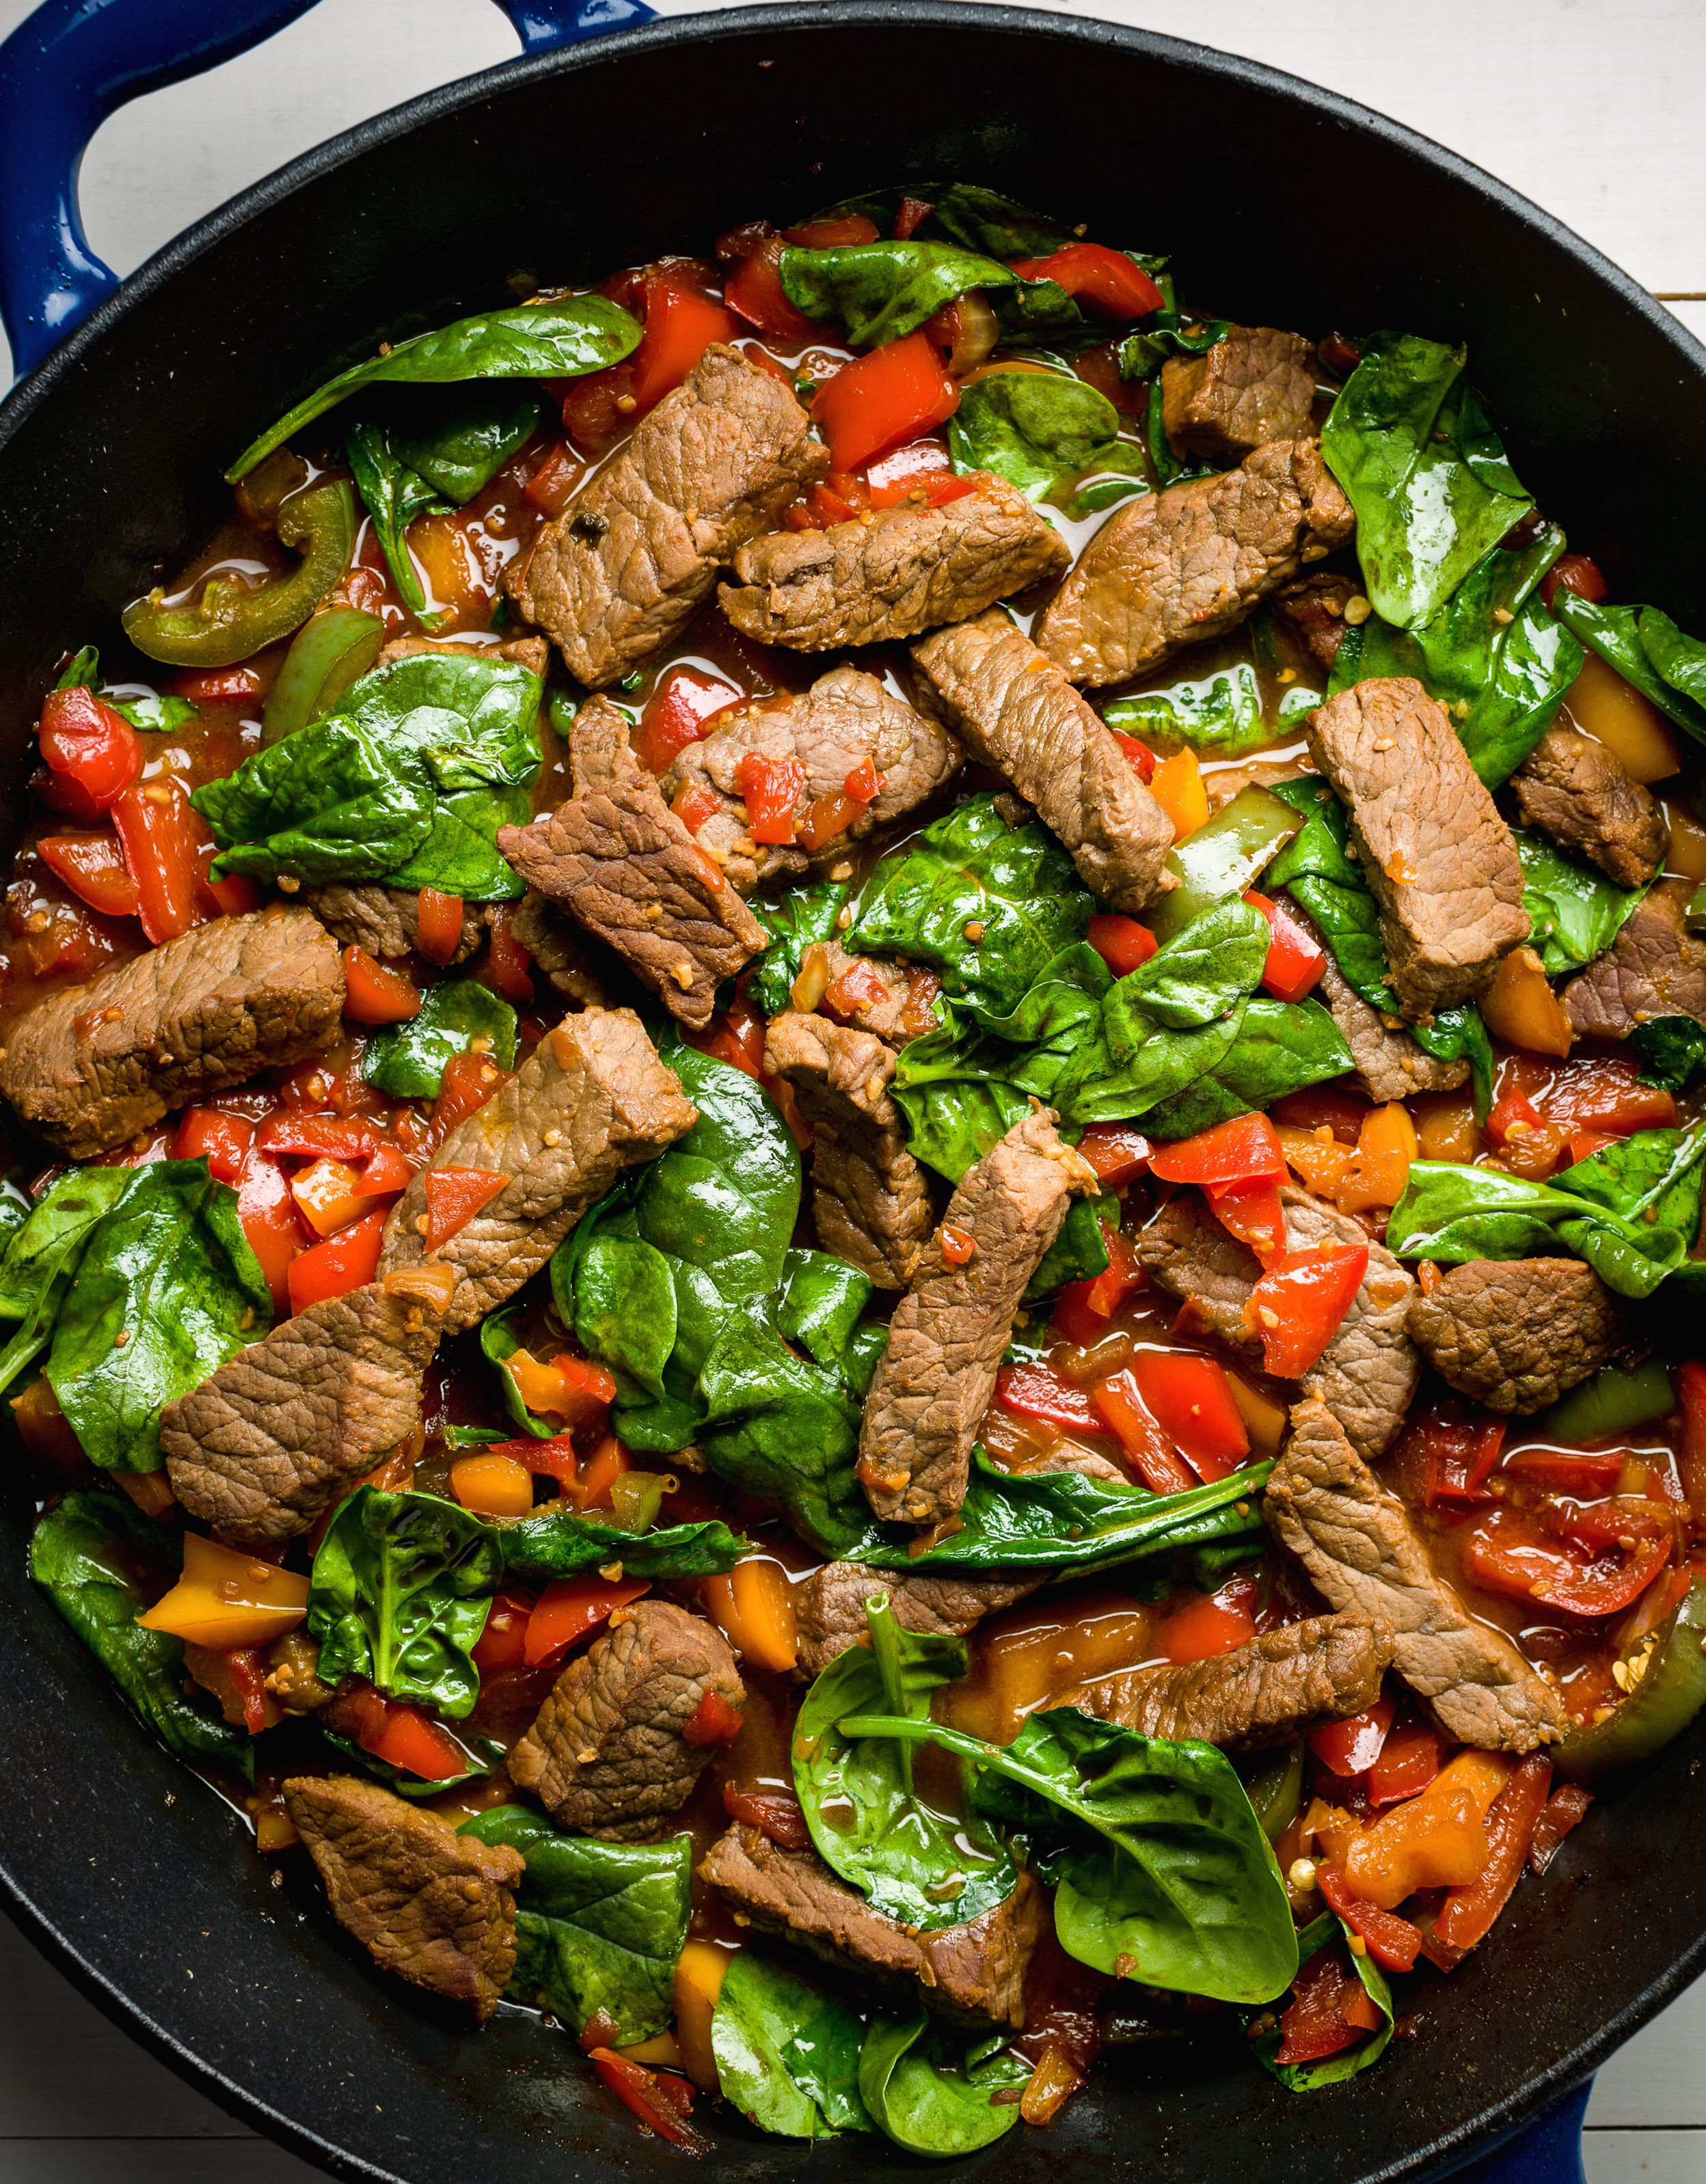 10 Lovely Beef Recipe Ideas For Dinner 30 healthy steak recipes healthy ways to cook steak delish 2021